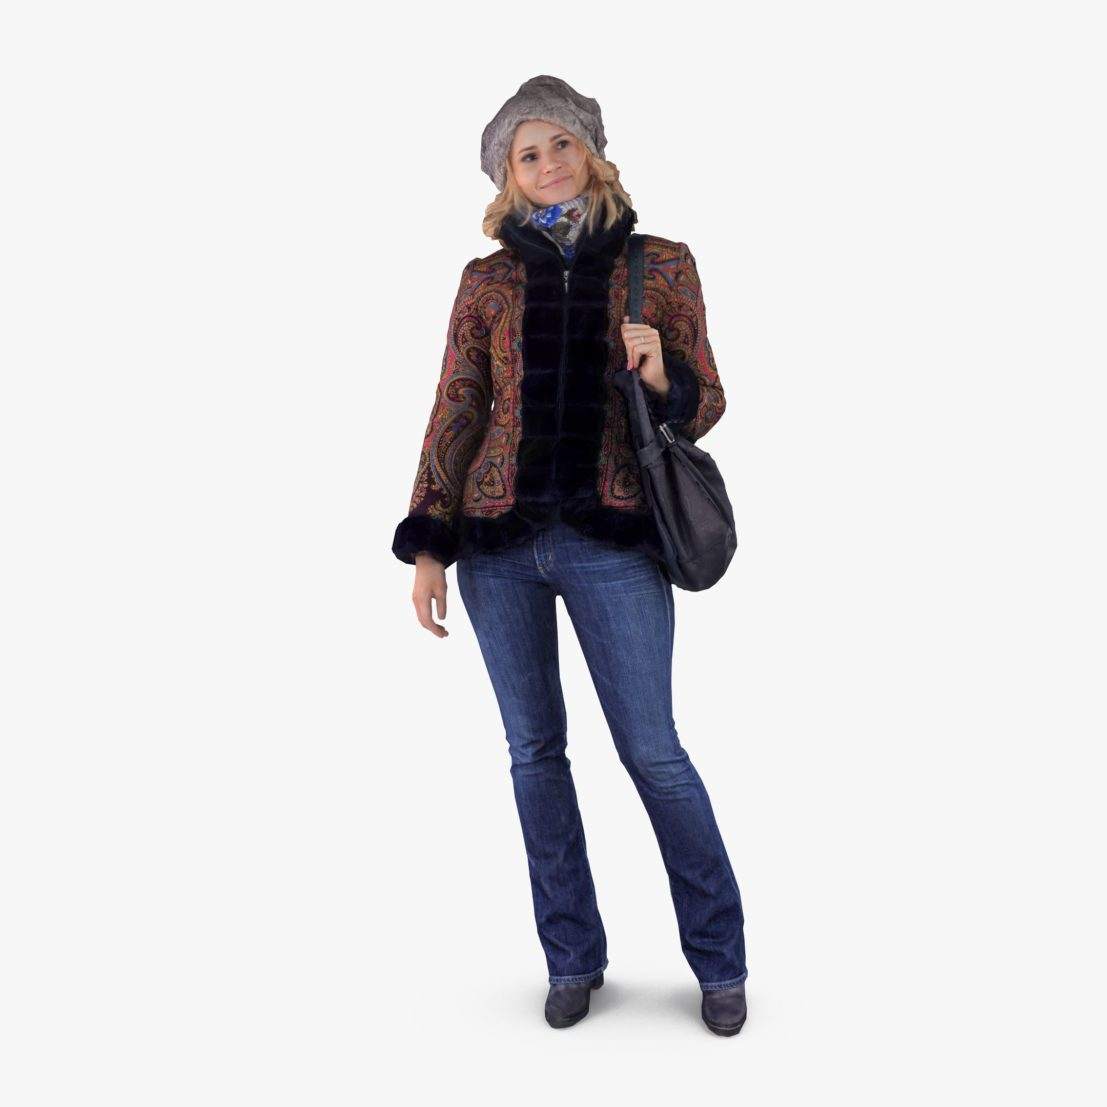 Winter Lady Standing 3D Model | 3DTree Scanning Studio